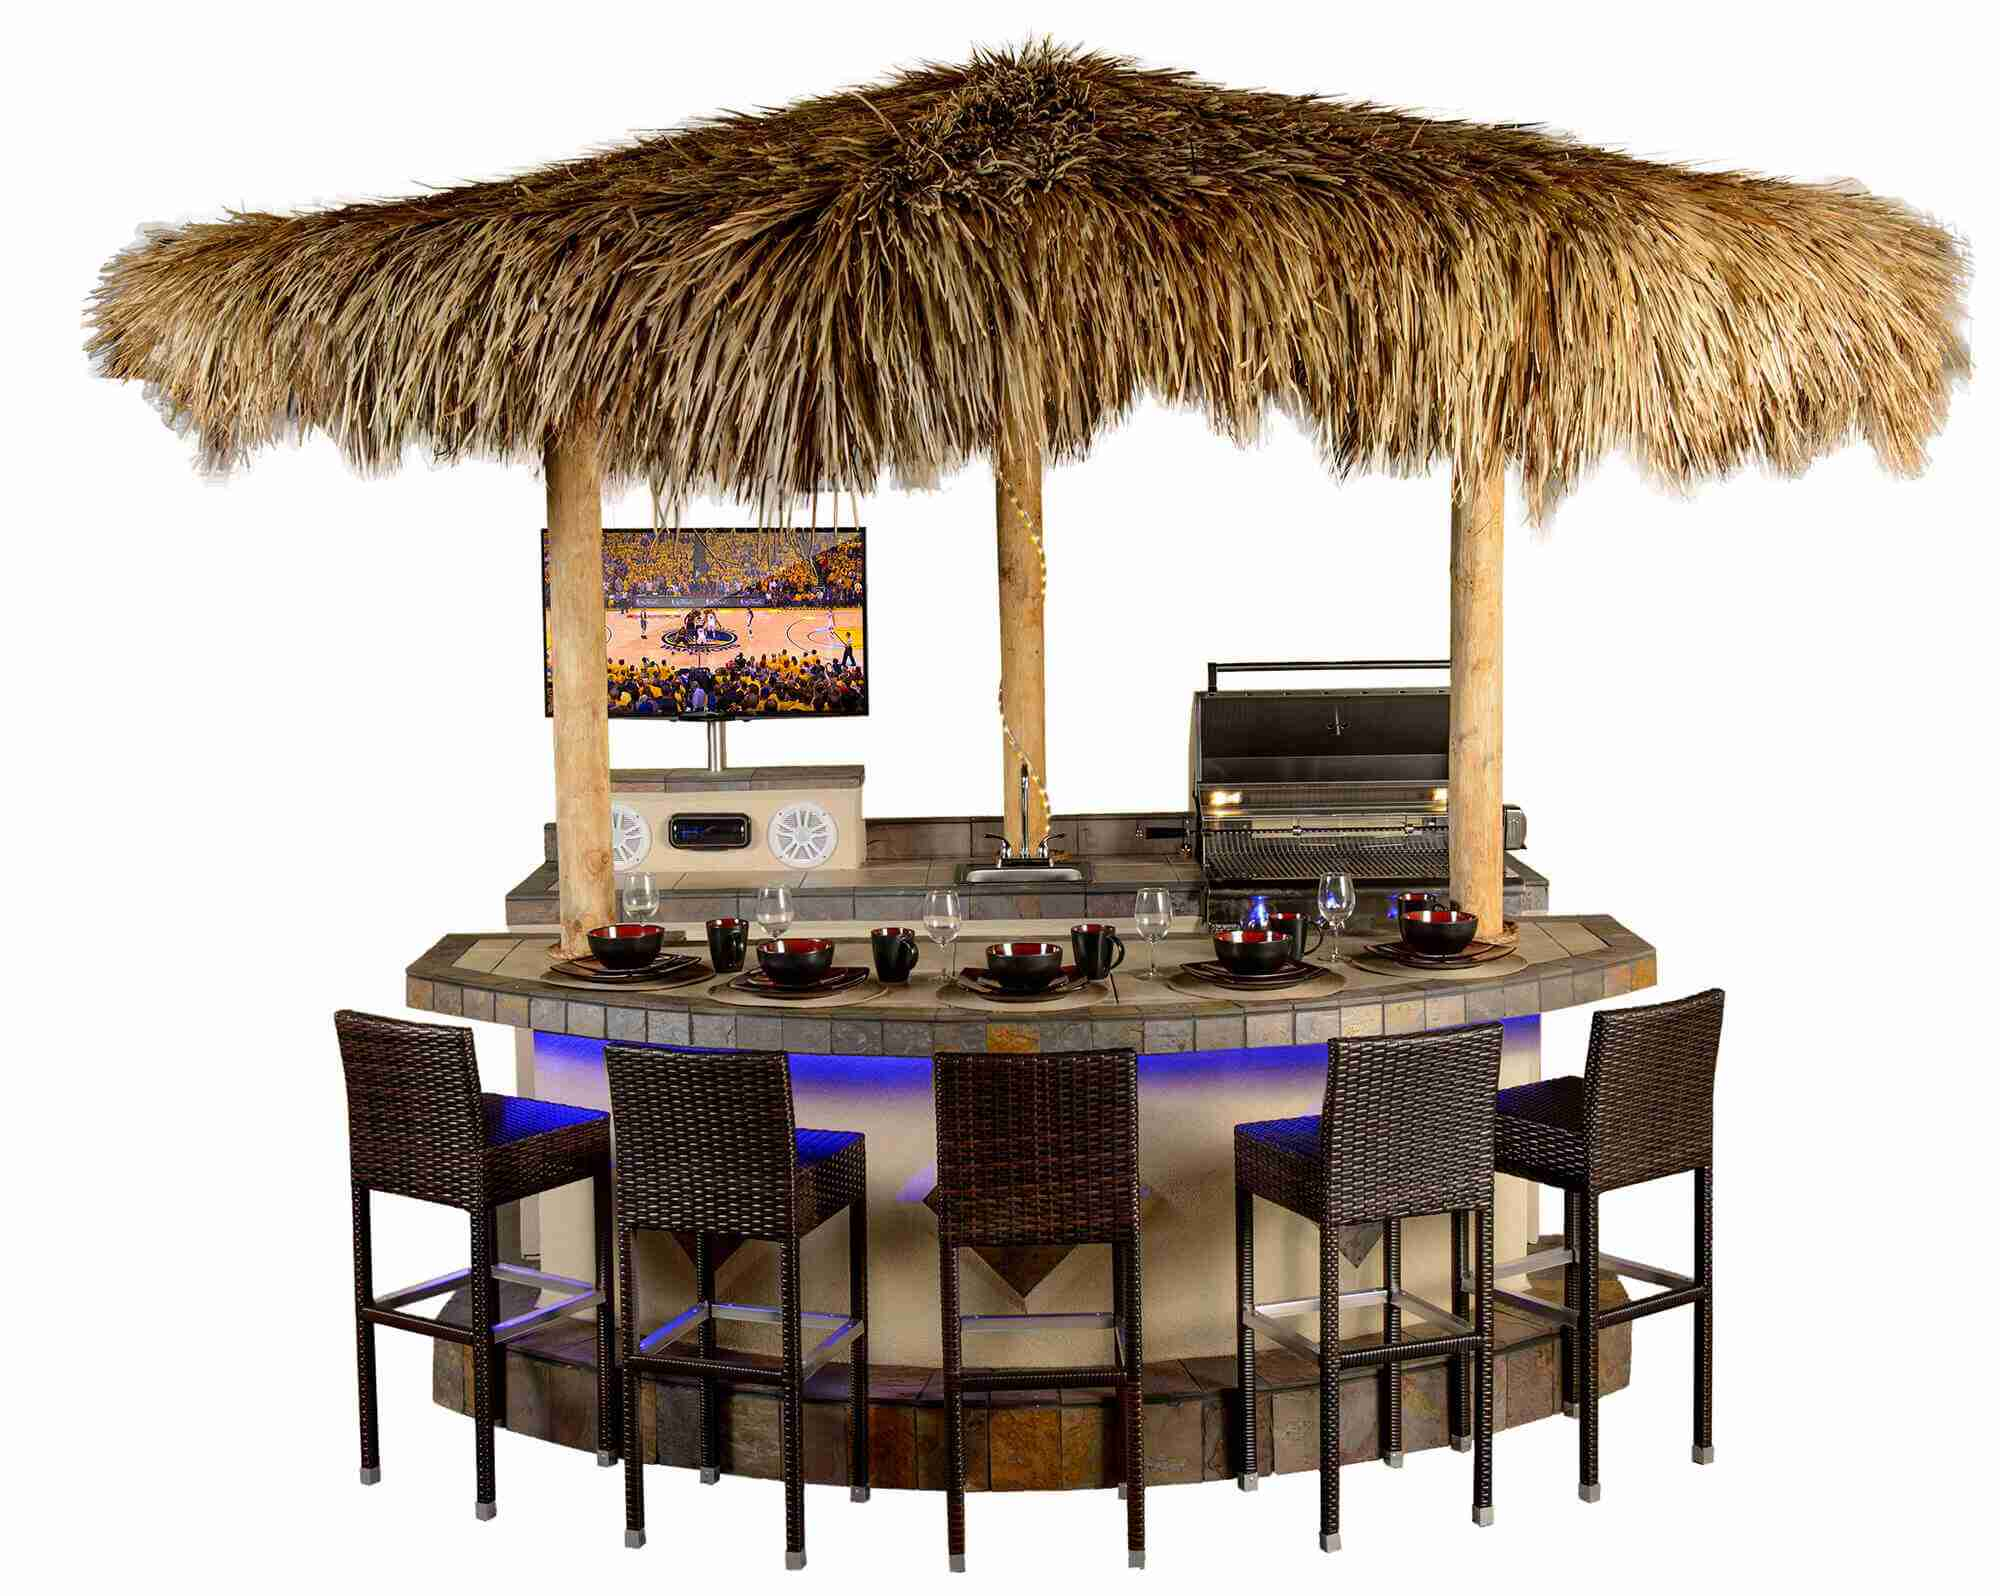 Amazing Paradise Grills Tiki Bar in Pompano Beach showroom